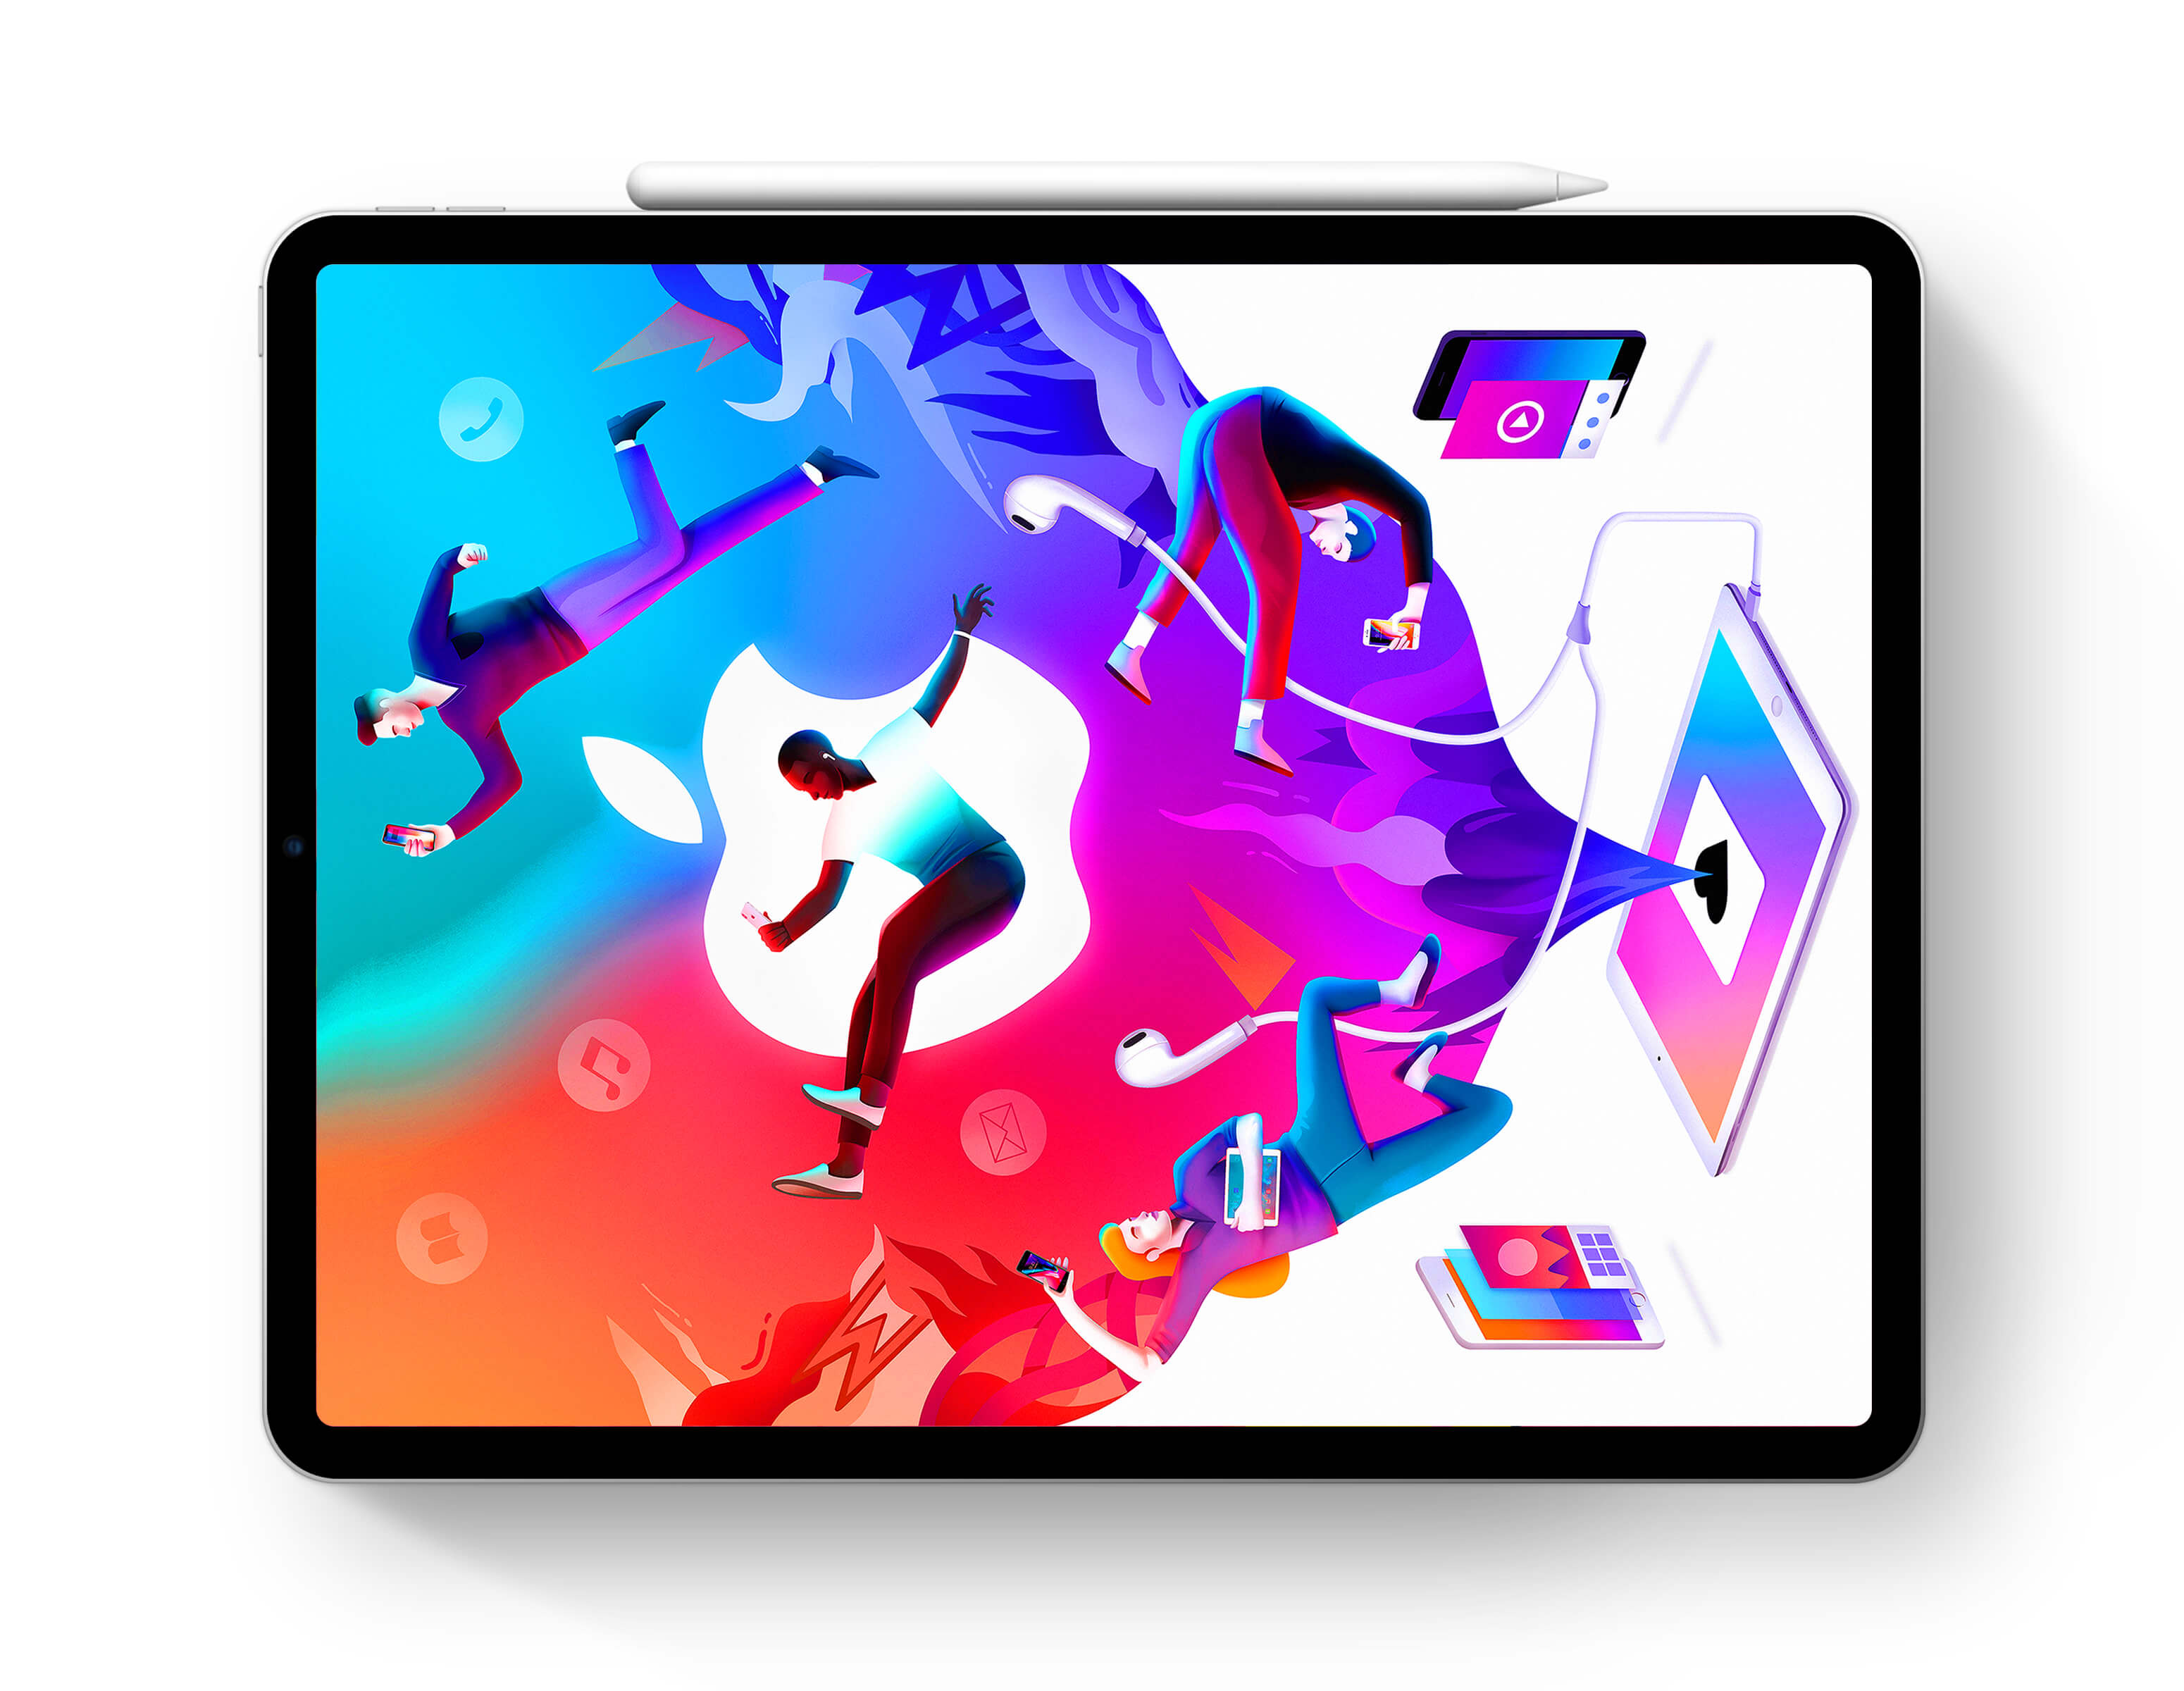 iPad Pro with Abstract Apple Background